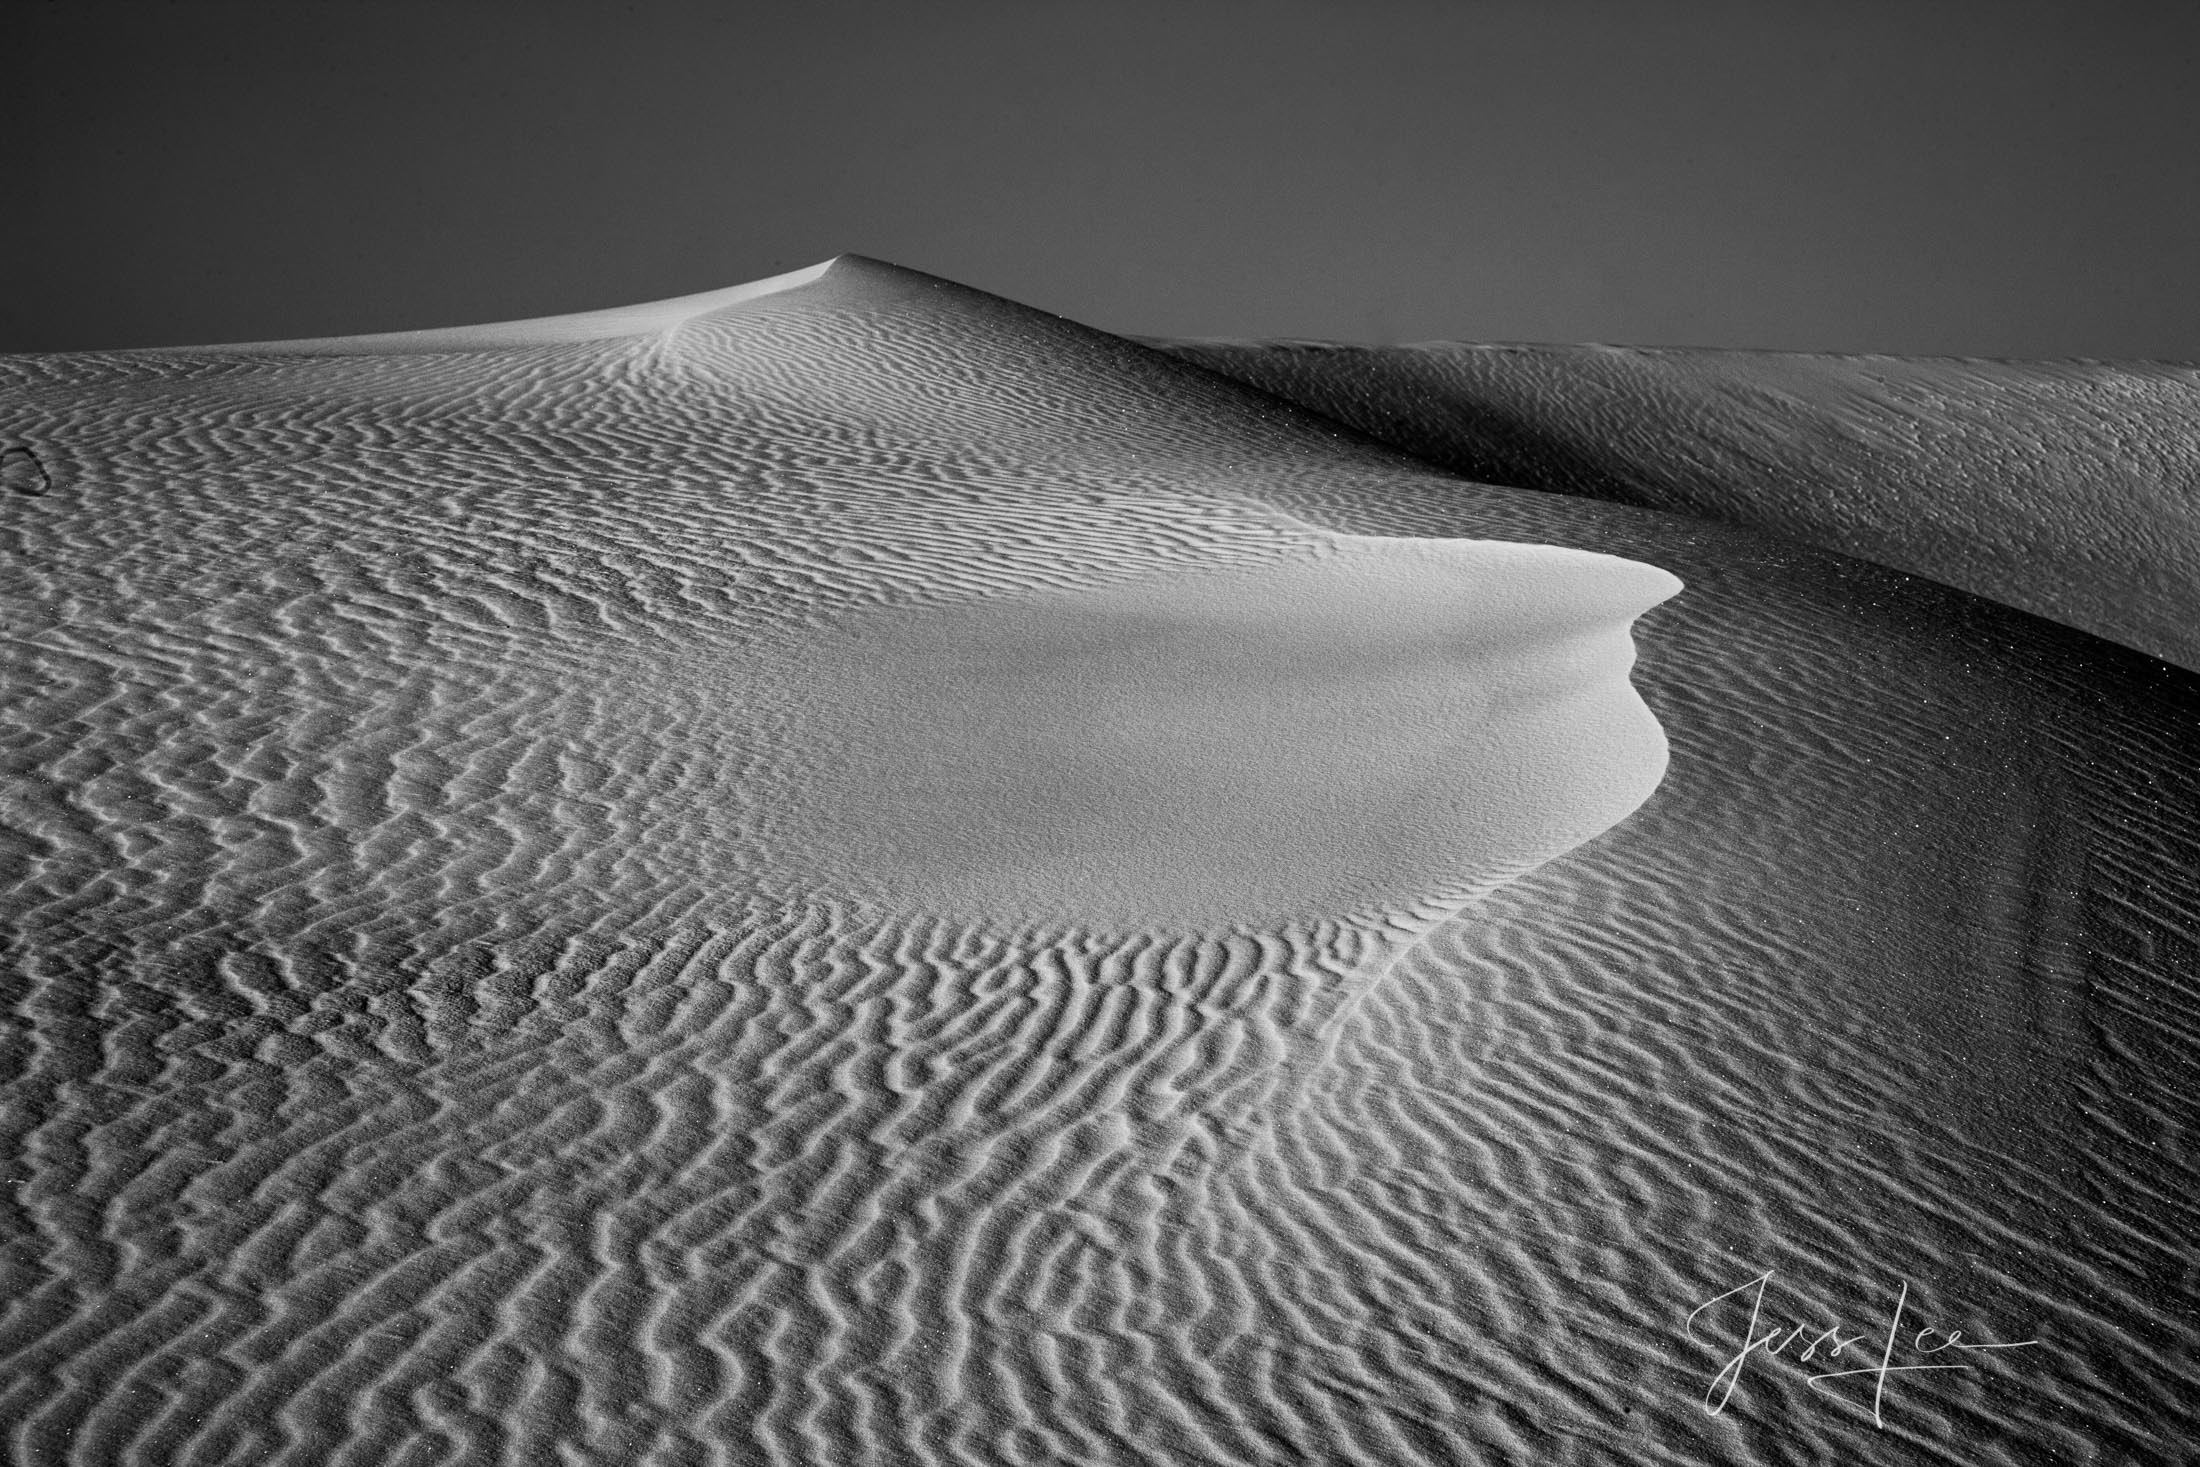 Dunes are one of my favorite nature photography subjects. I feel the simplicity of line and shape allows me to concentrate on...